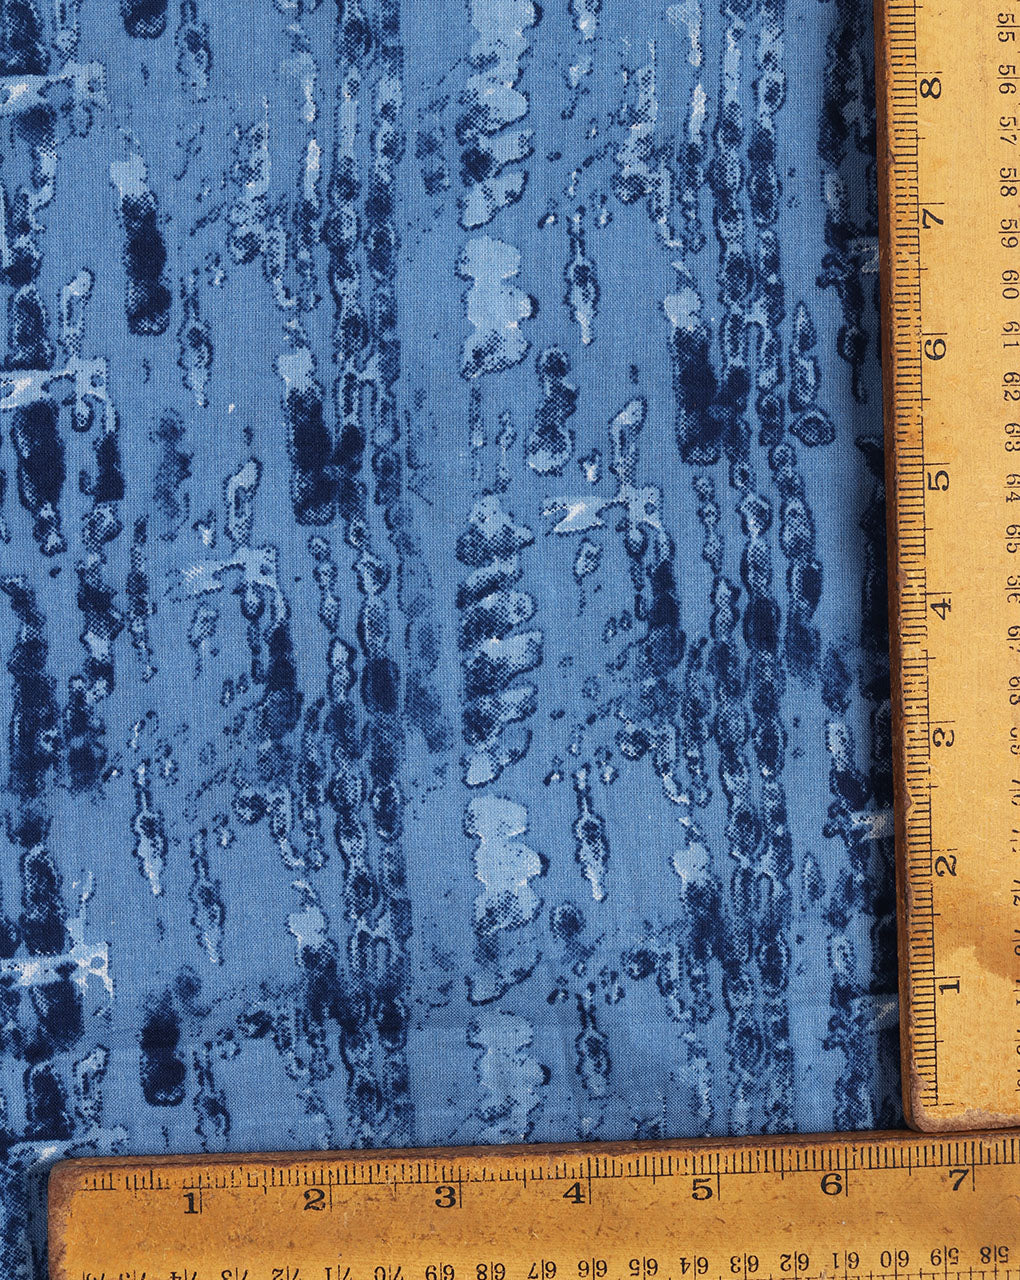 Blue Abstract Screen Print Cotton Fabric - Fabriclore.com